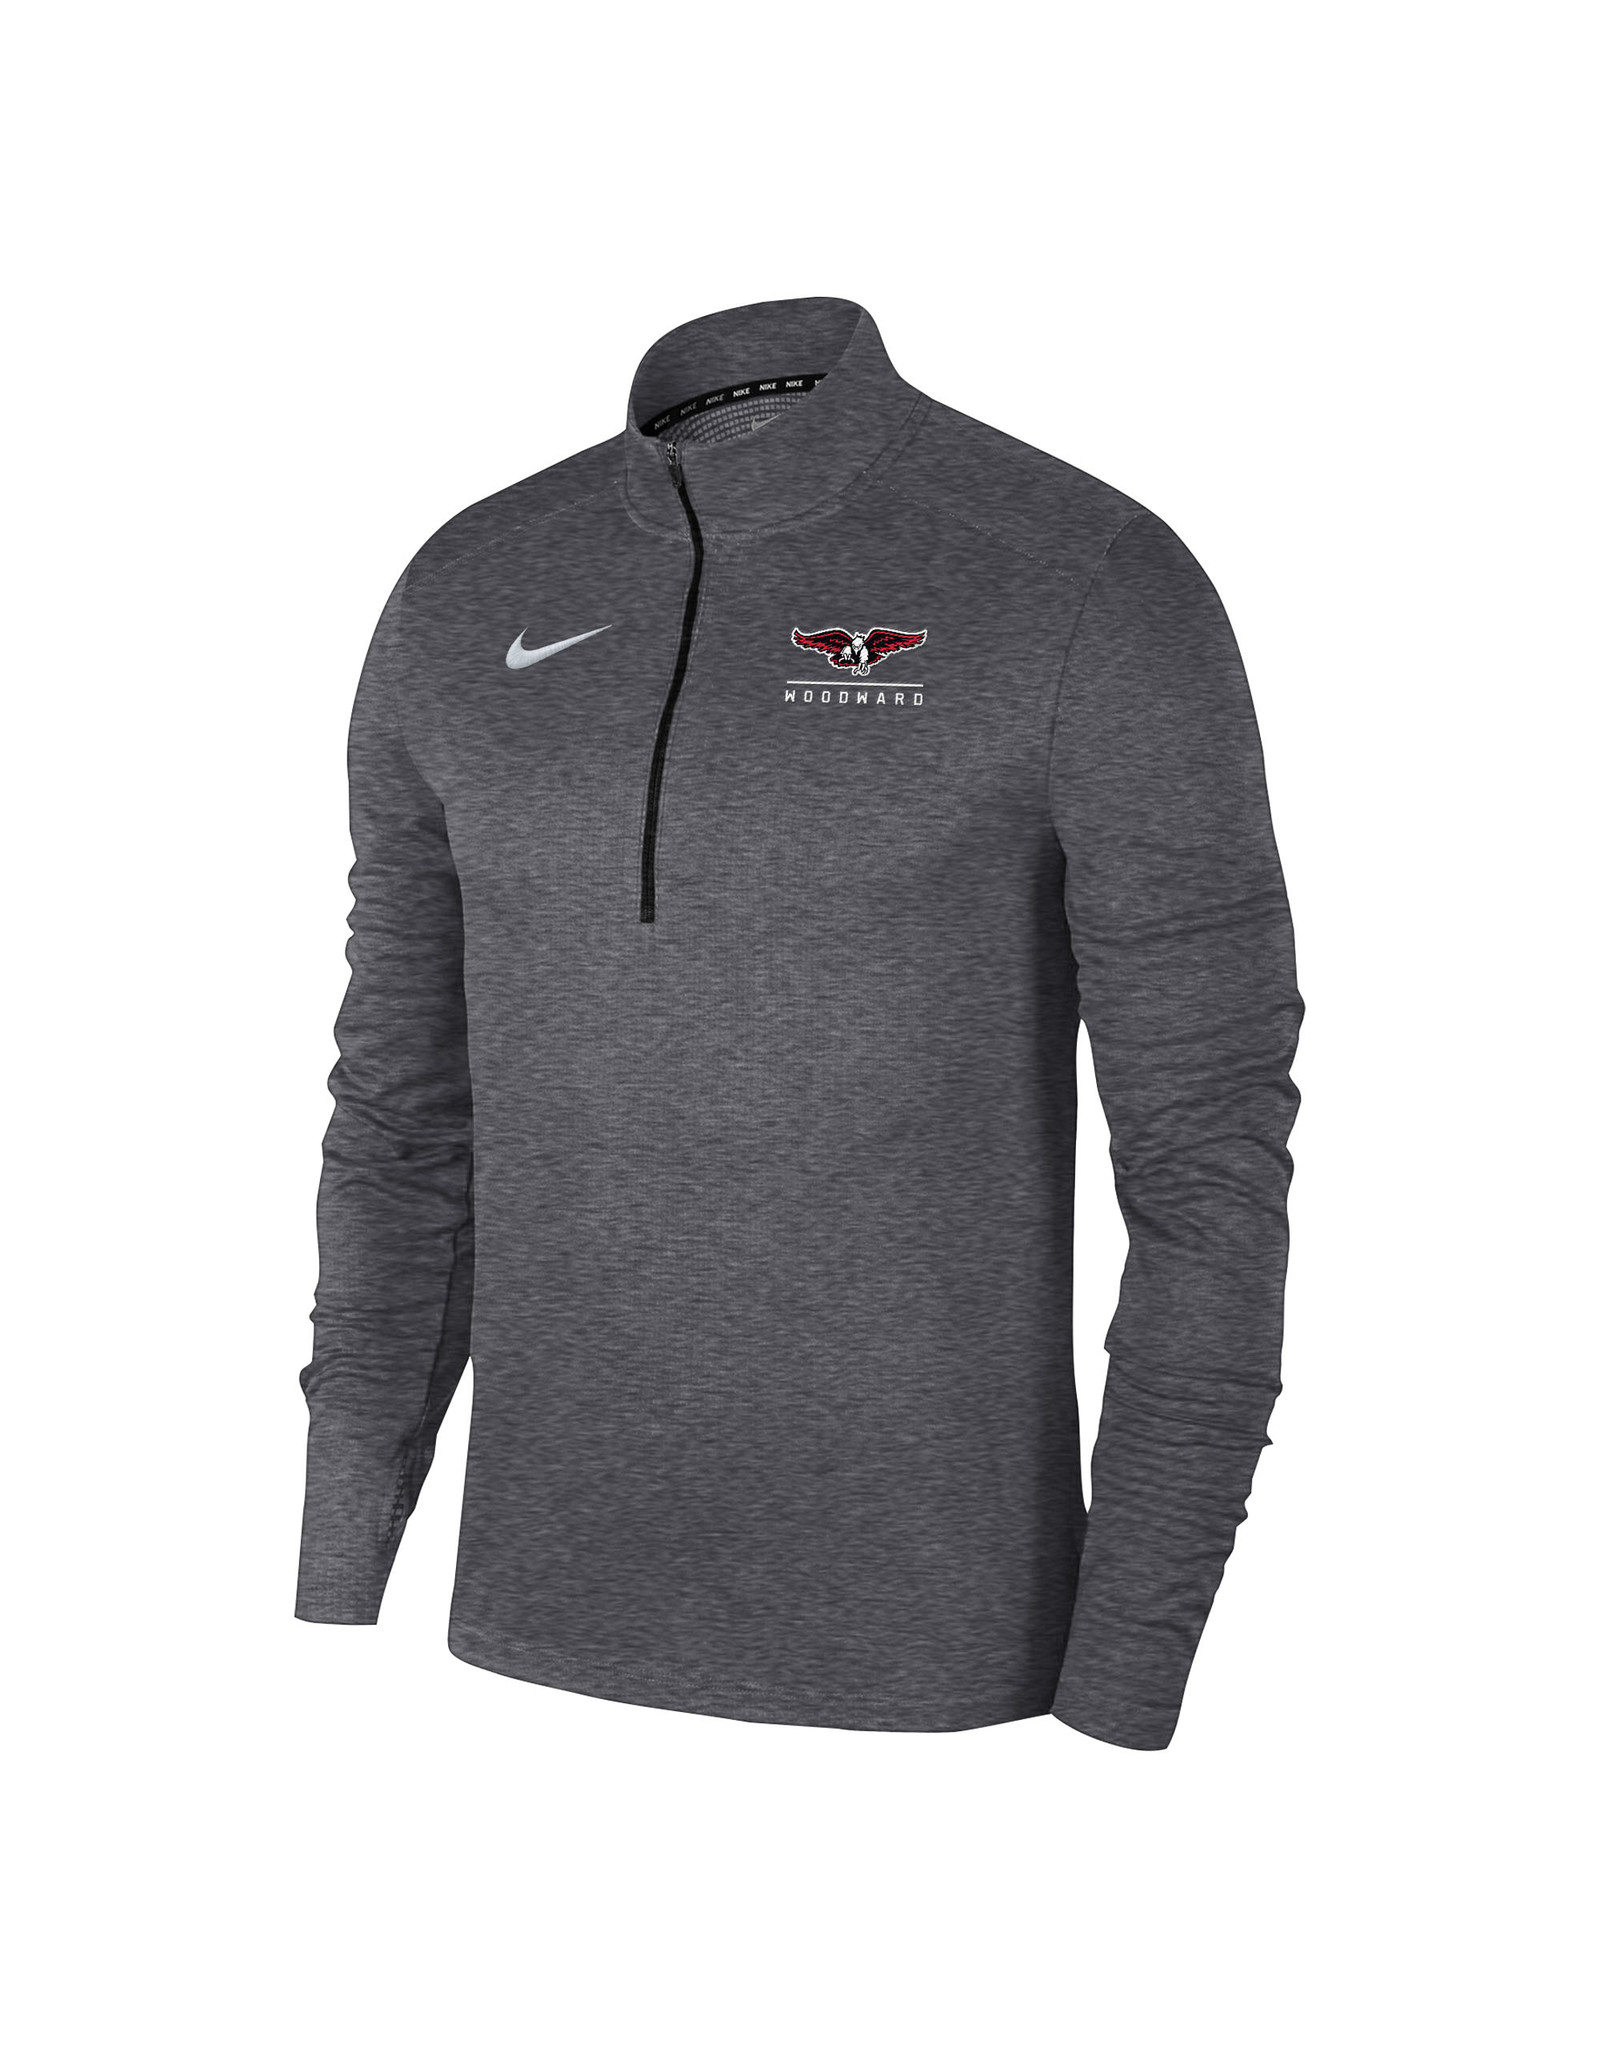 NIKE Pacer 1/4 Zip Pullover in Carbon Heather